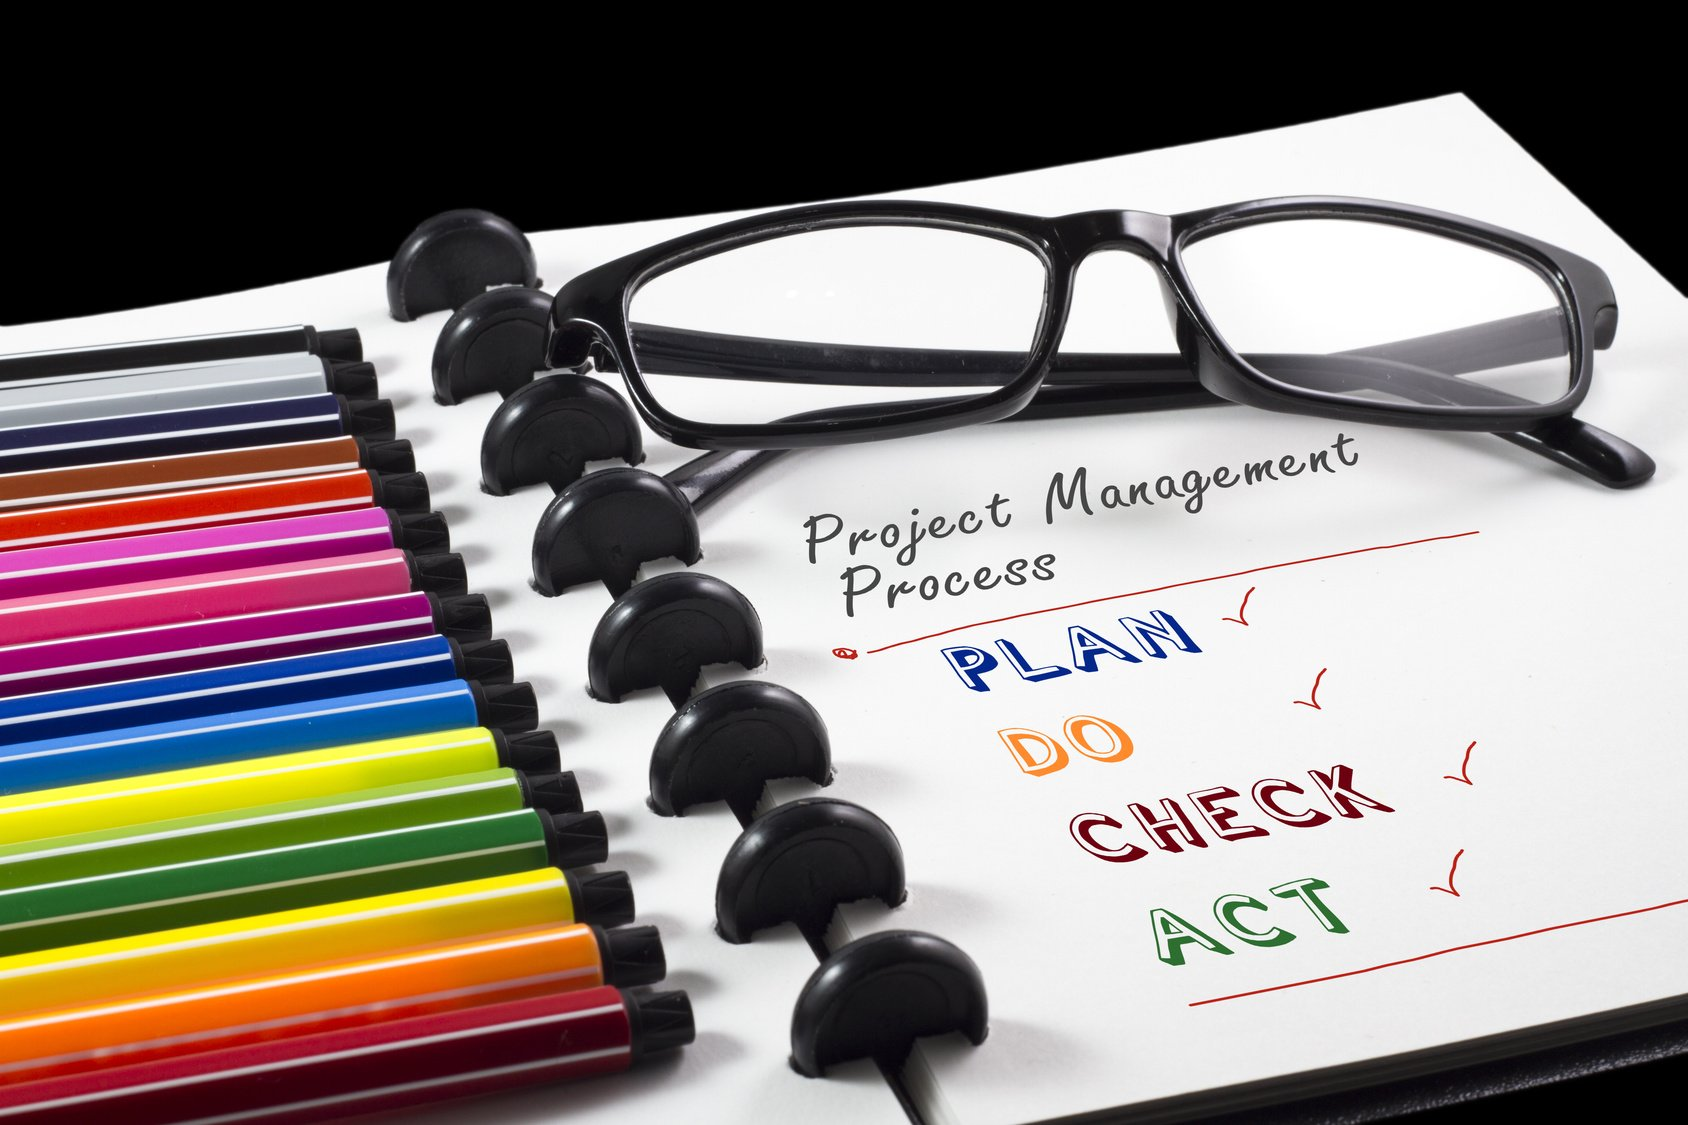 Project Management Process text on white sketchbook with color pen and eye glasses